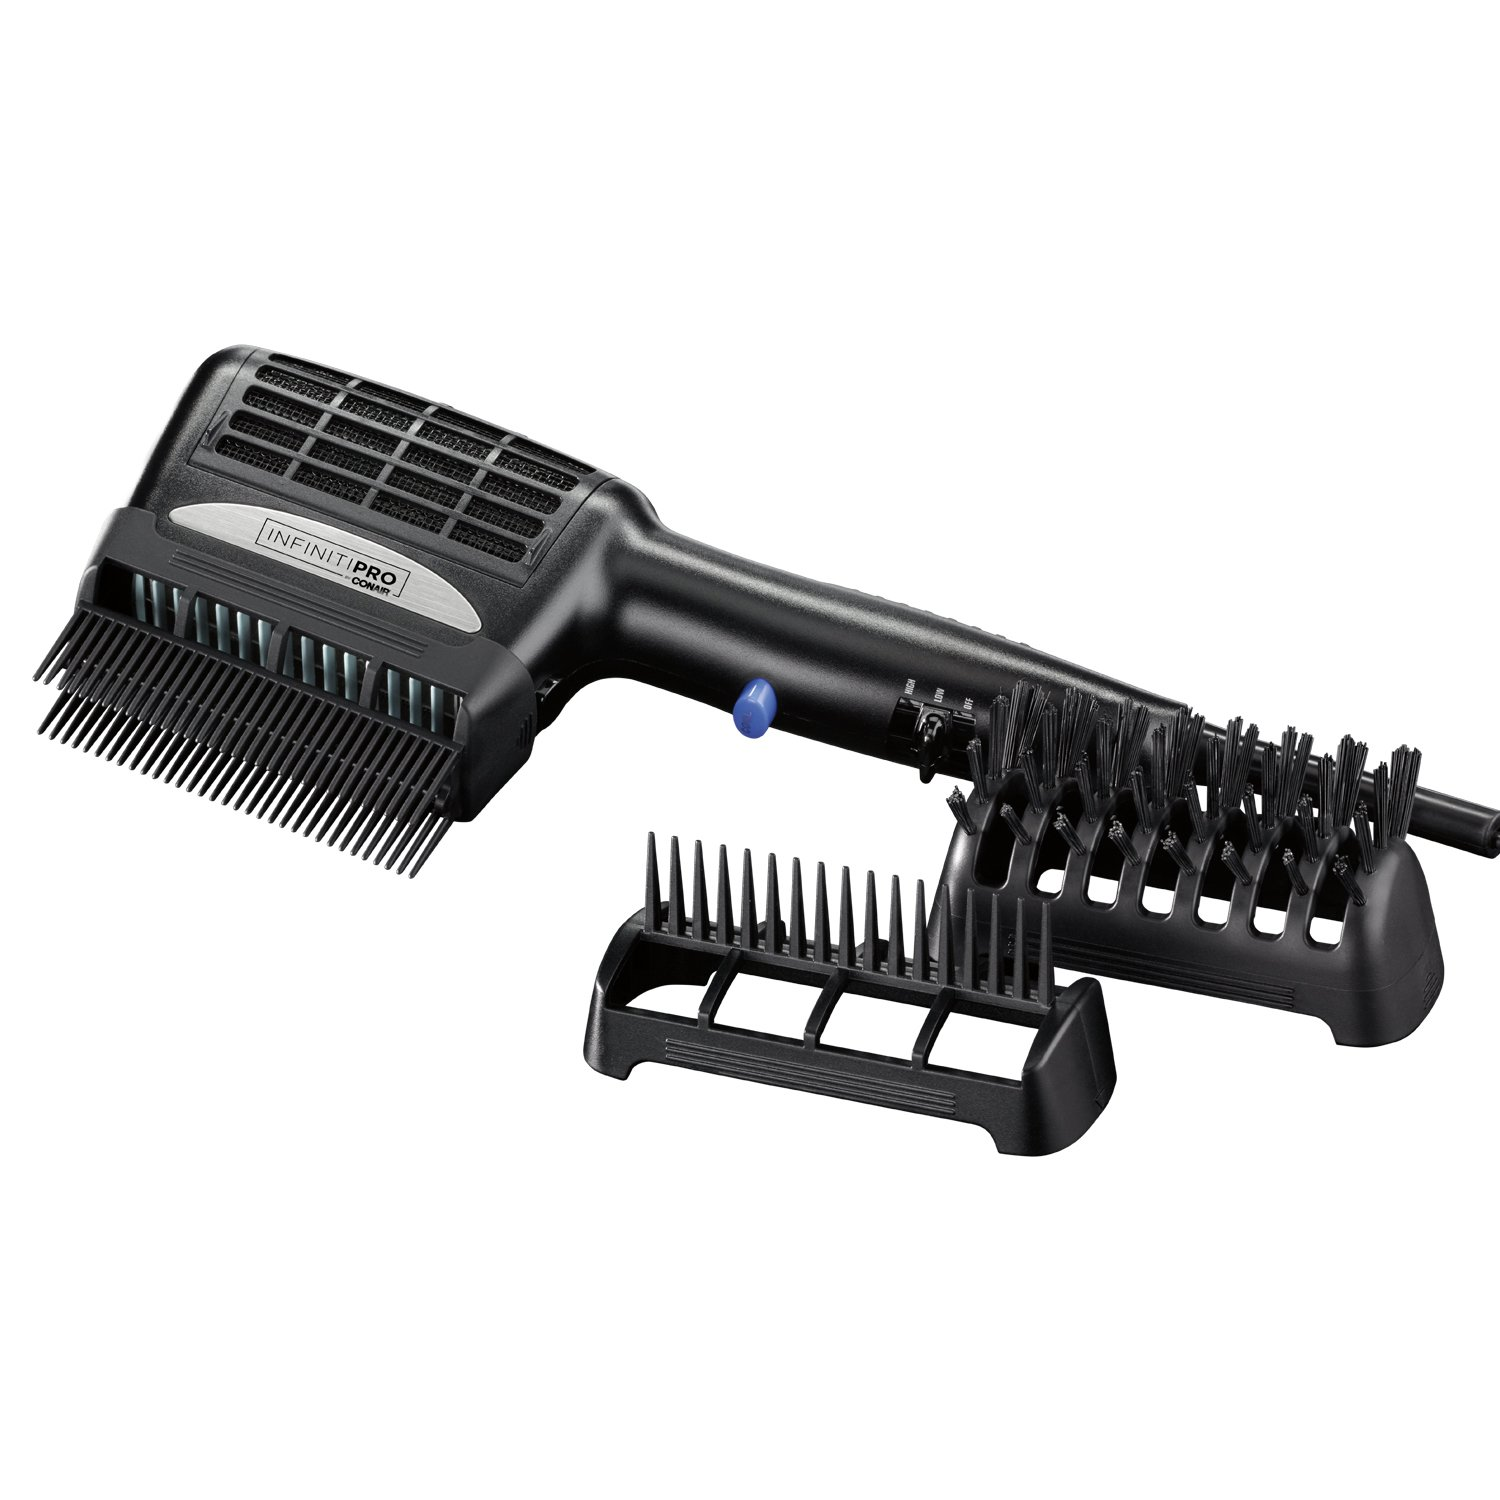 INFINITIPRO BY CONAIR 1875W 3-in-1 Ceramic Styler; 3 Attachments to Detangle/ Straighten/ Volumize